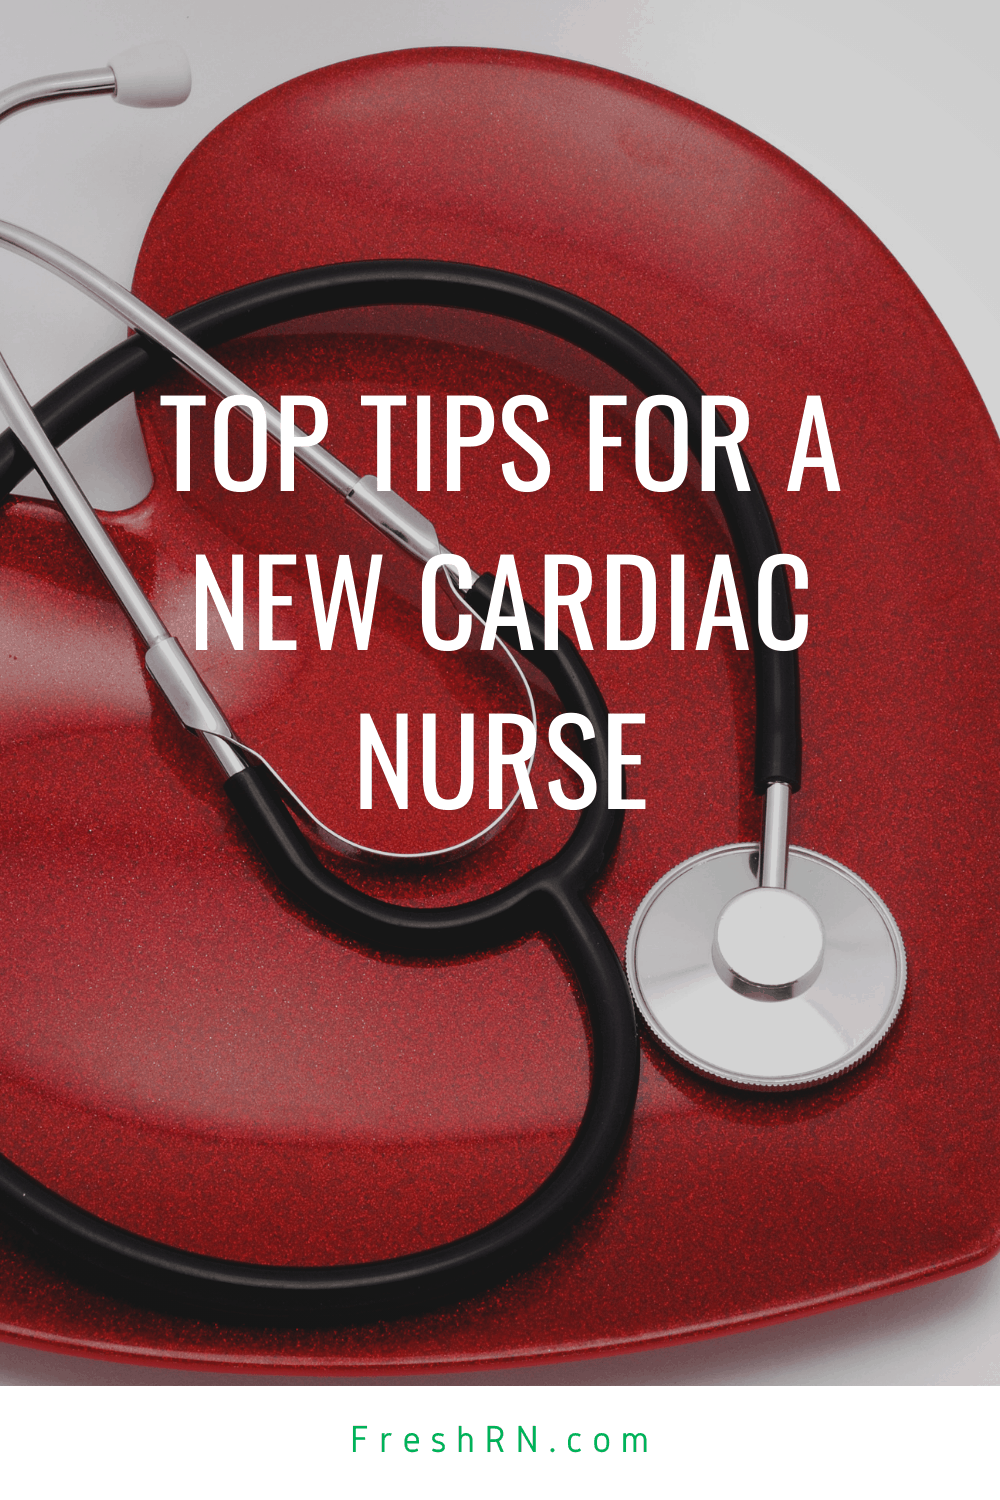 Top Tips for a New Cardiac Nurse. Get to know these valuable and helpful tips for the new cardiac nurse from an experienced nurse who's been there.  #FreshRN #nurse #nurses #cardiac #cardiacnurse #newnurse #newgradnurse #nursespecialties